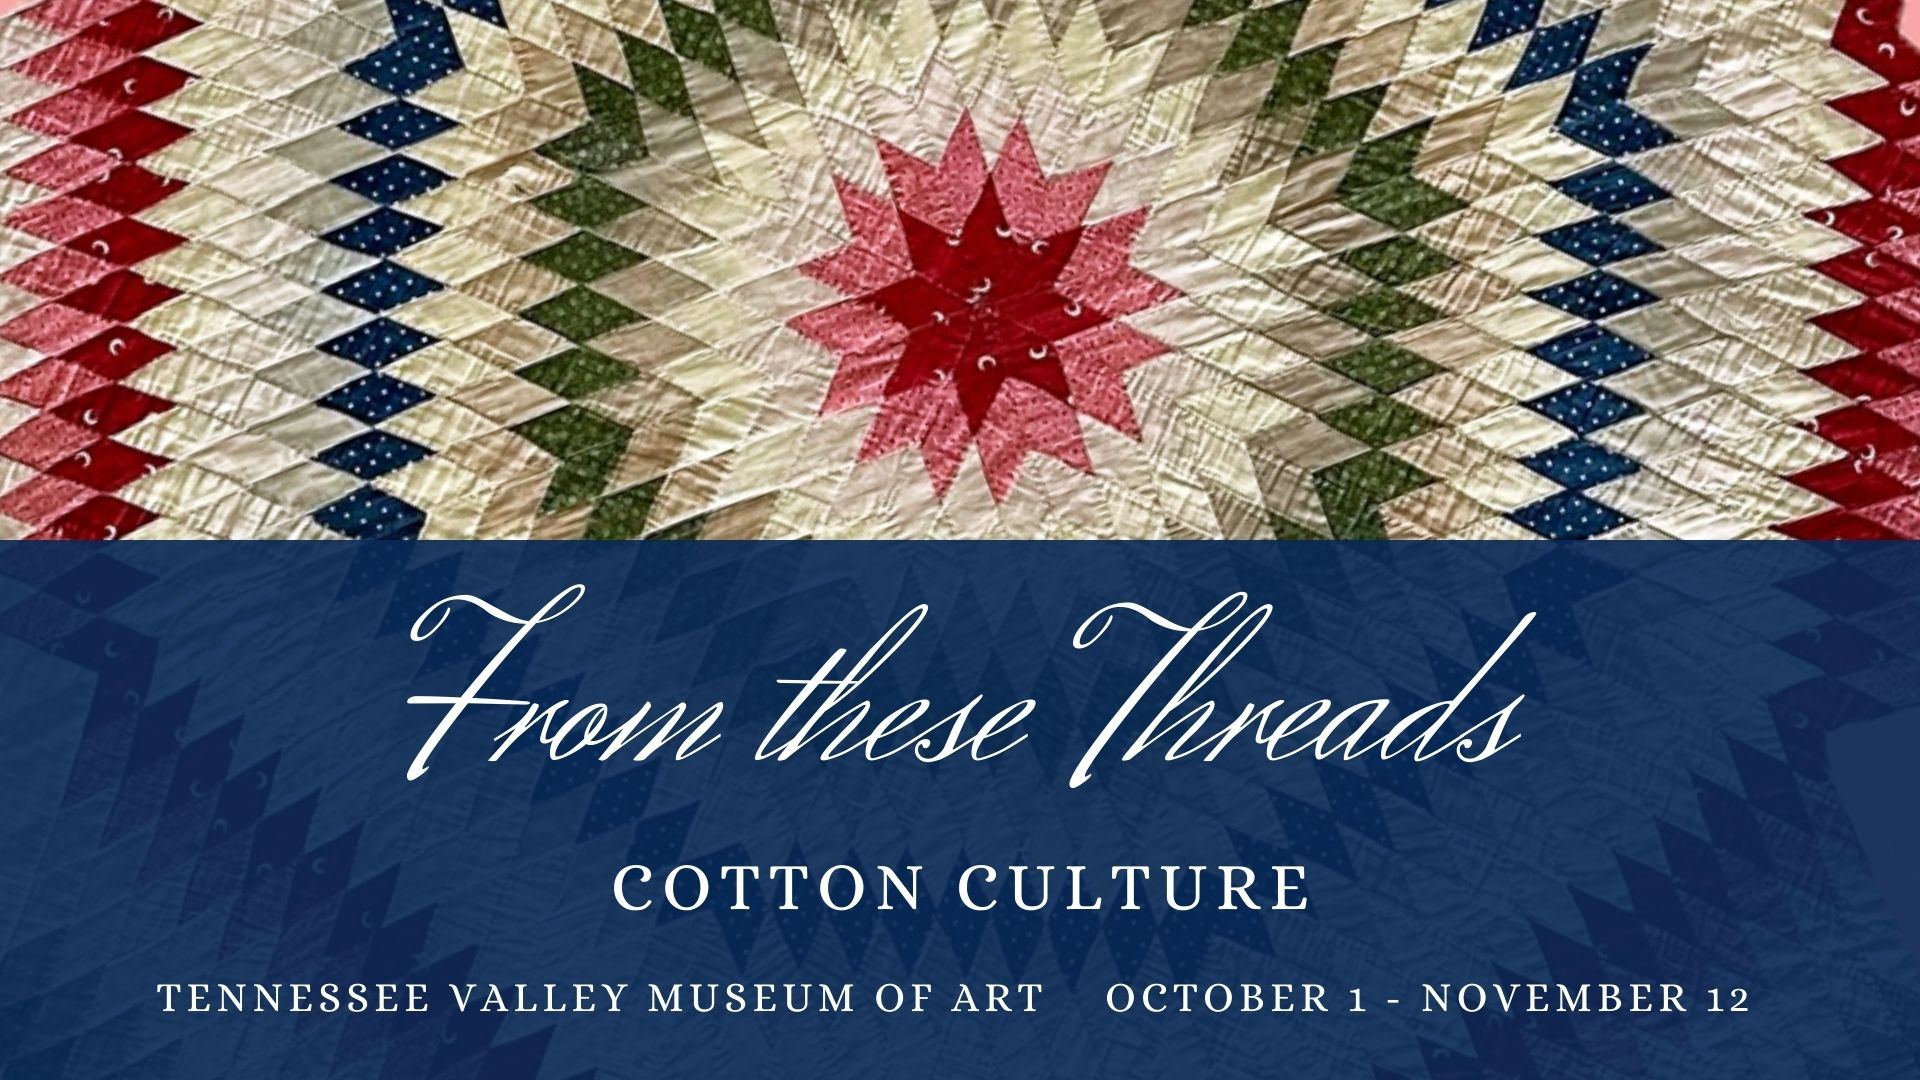 """Photo of quilt with the words """"From These Threads: Cotton Culture - Tennessee Valley Museum of Art - October 1-November12"""